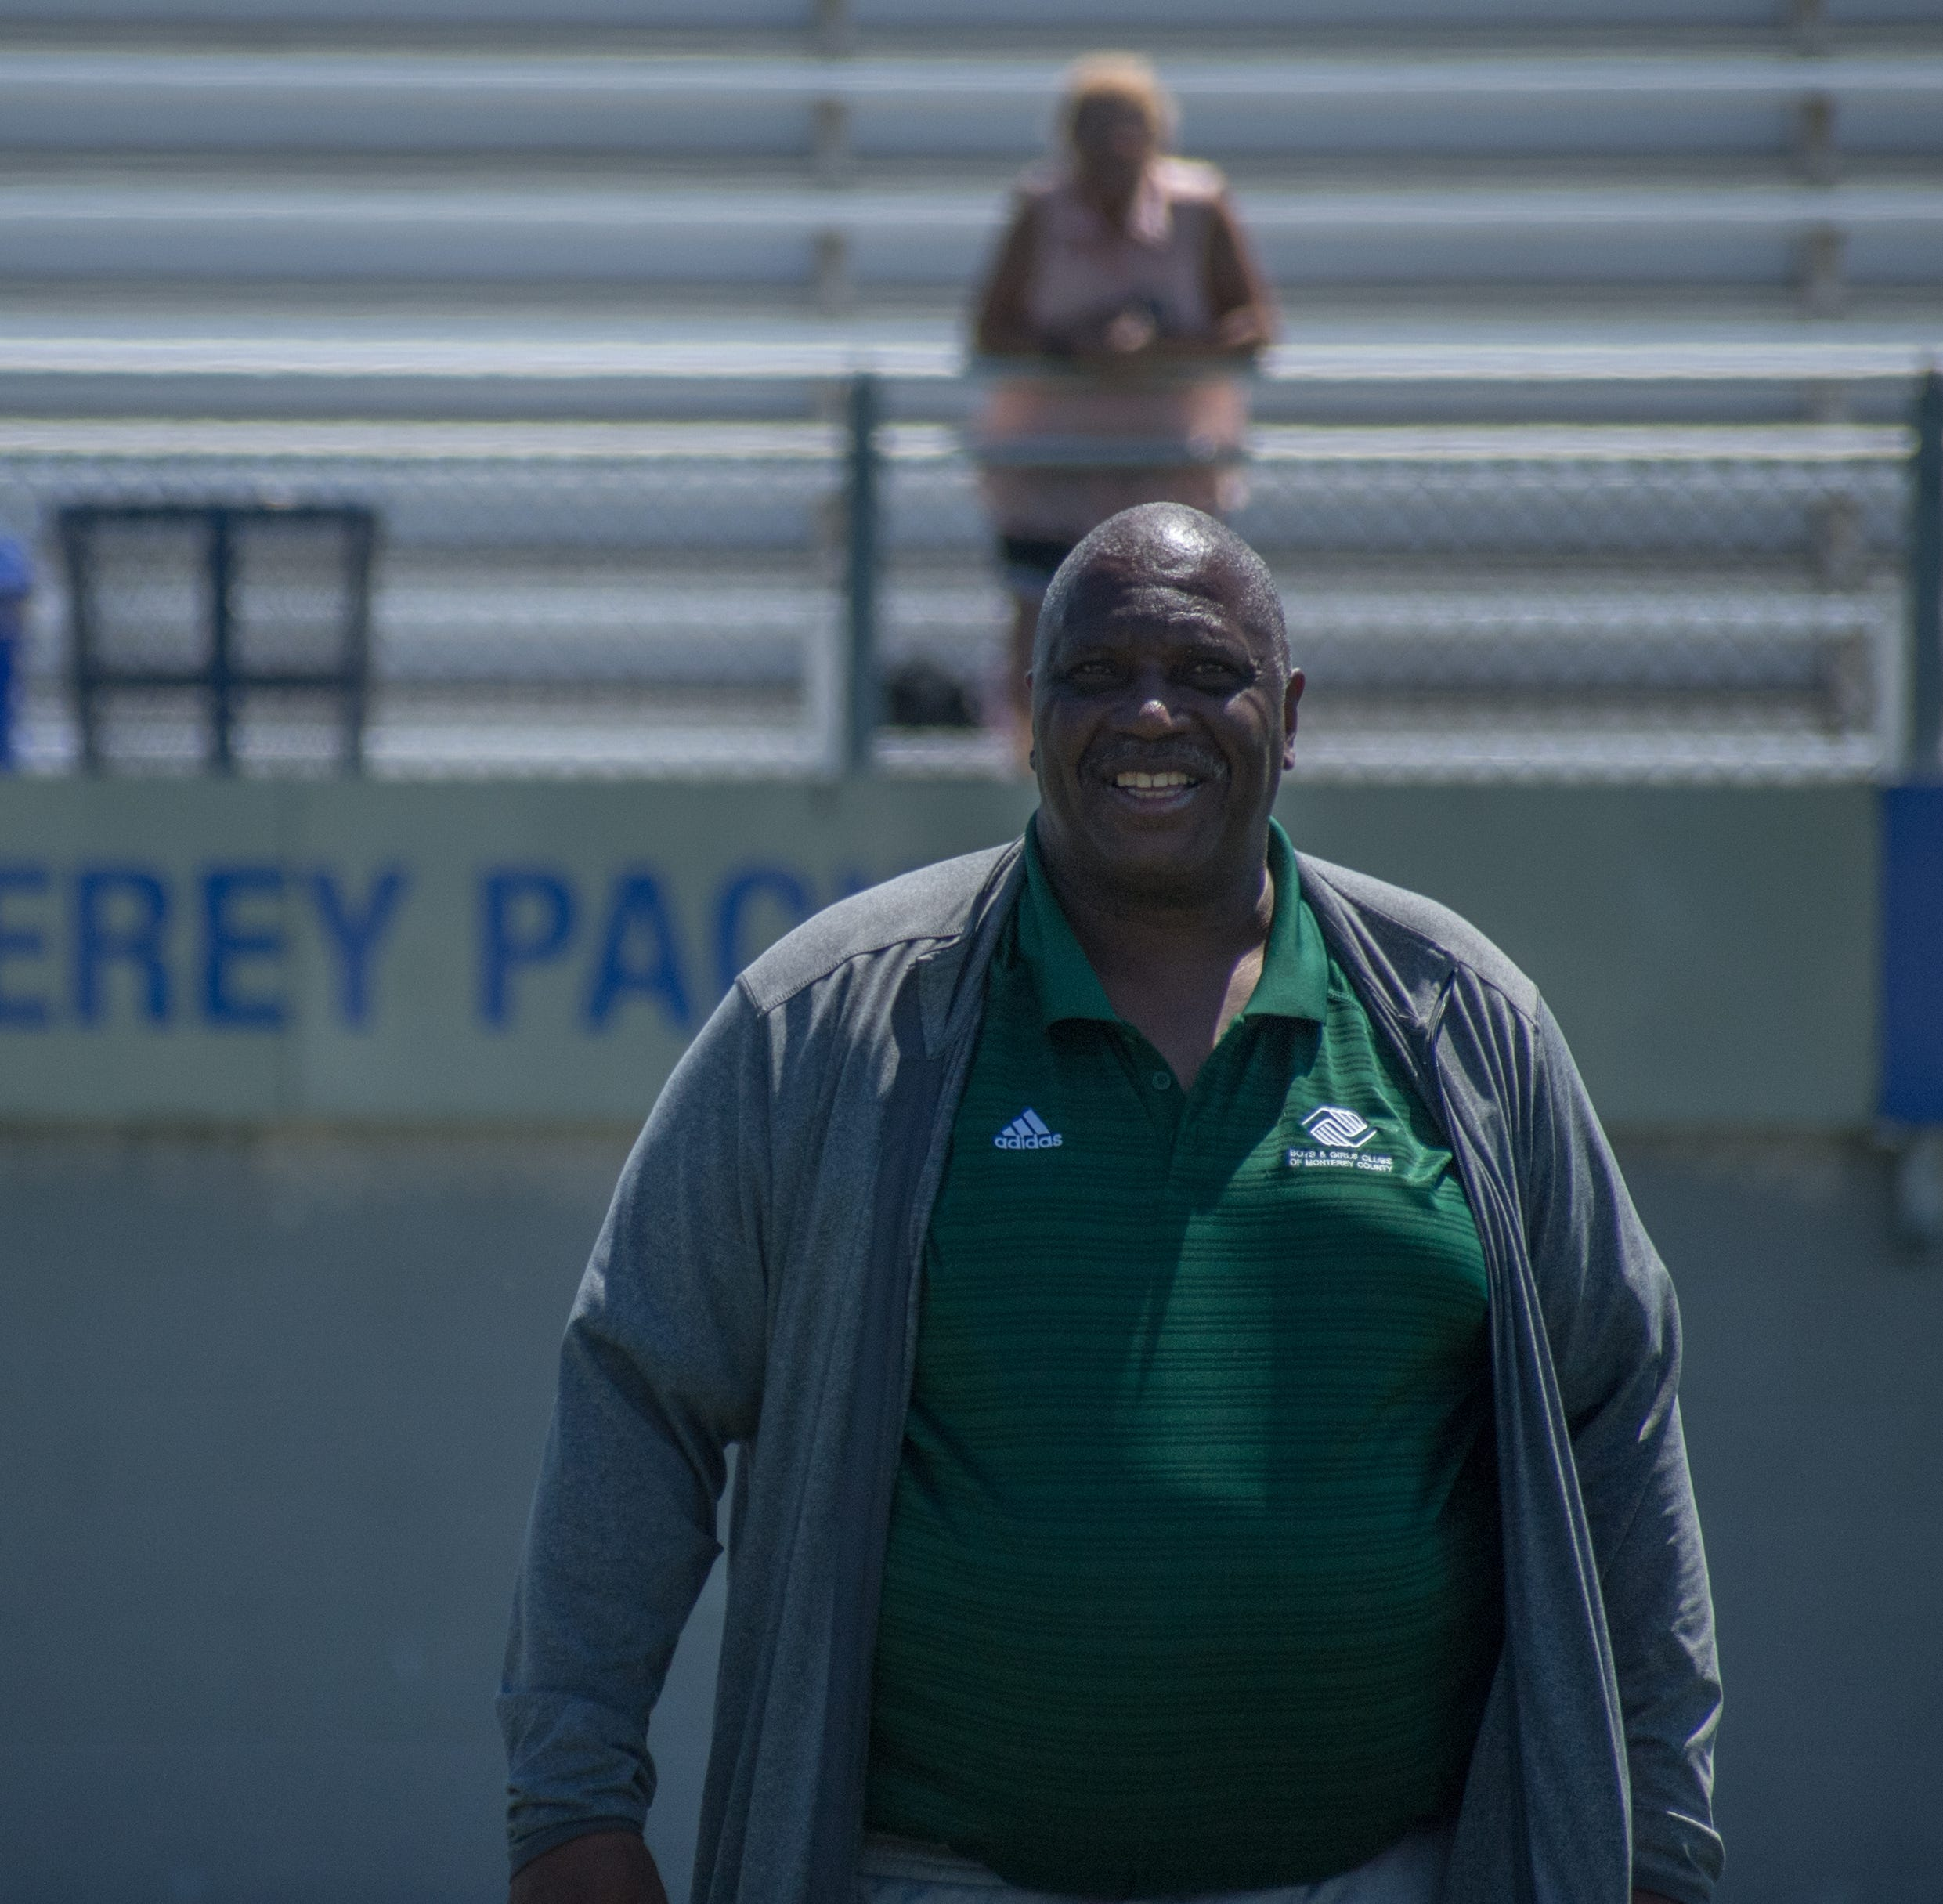 Meet the local legends teaching youth football and leadership skills — for free